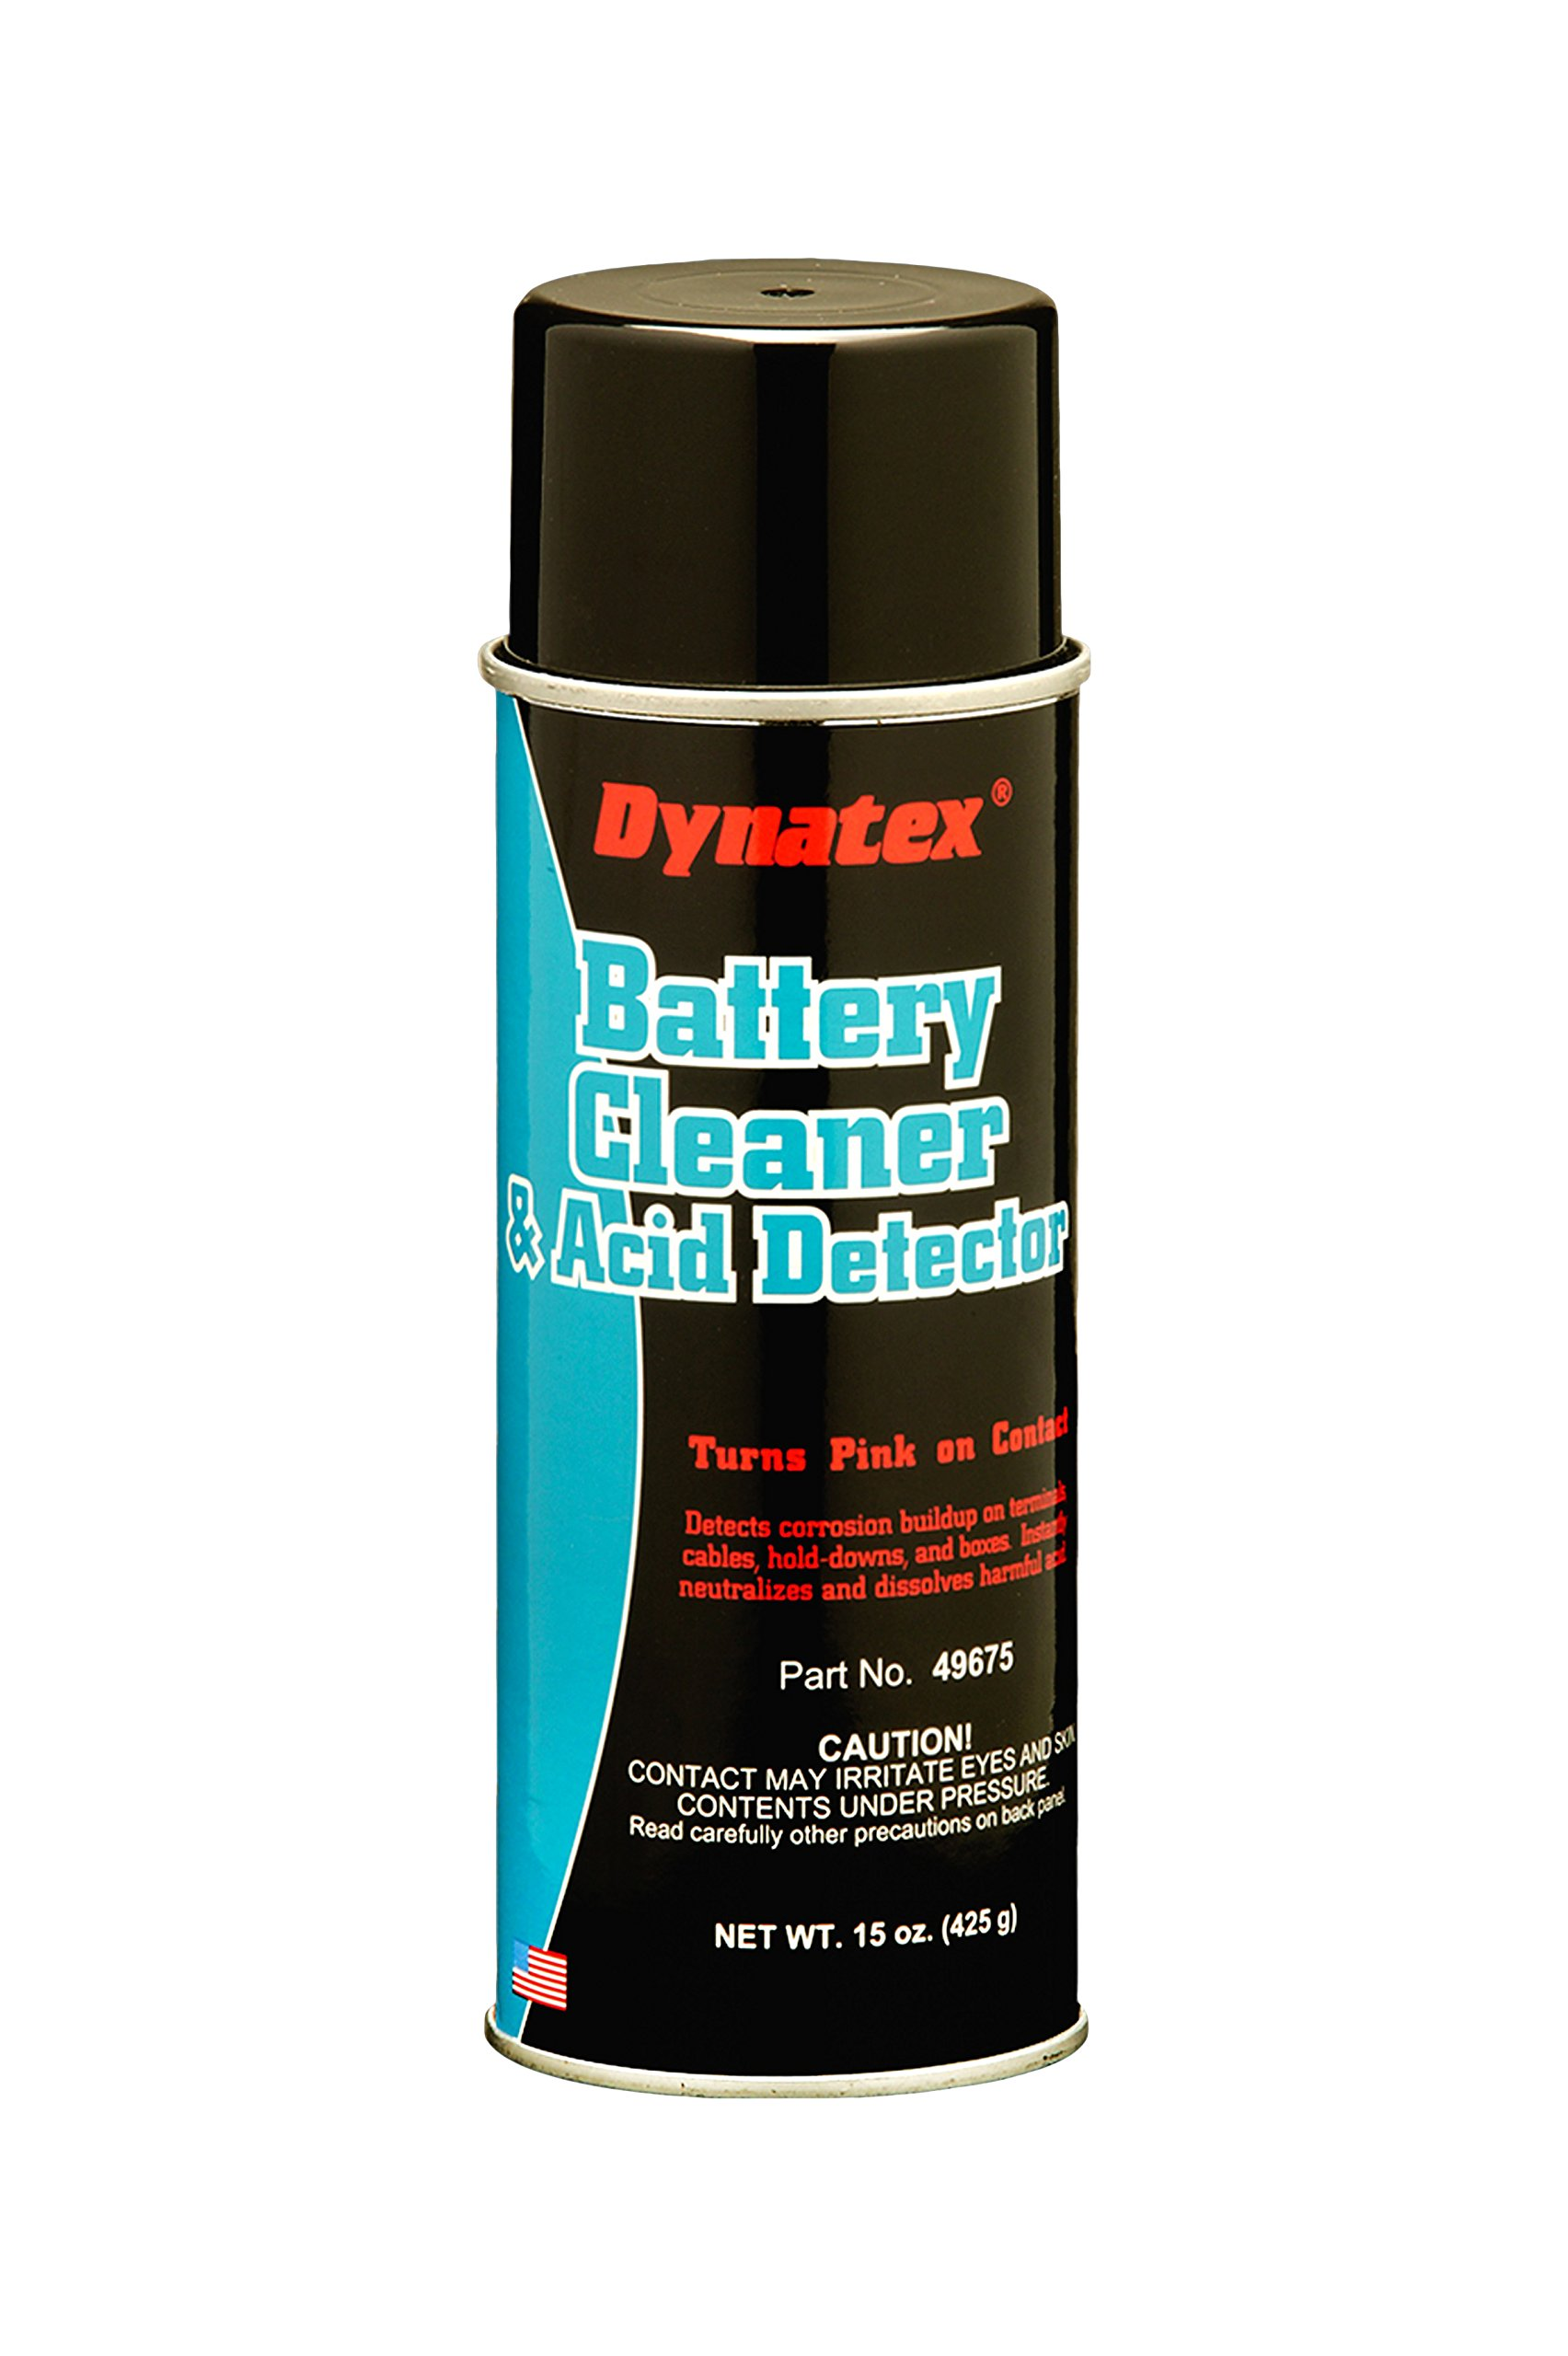 Dynatex 49675 Battery Terminal Cleaner with Acid Detector, 16 oz Aerosol Can